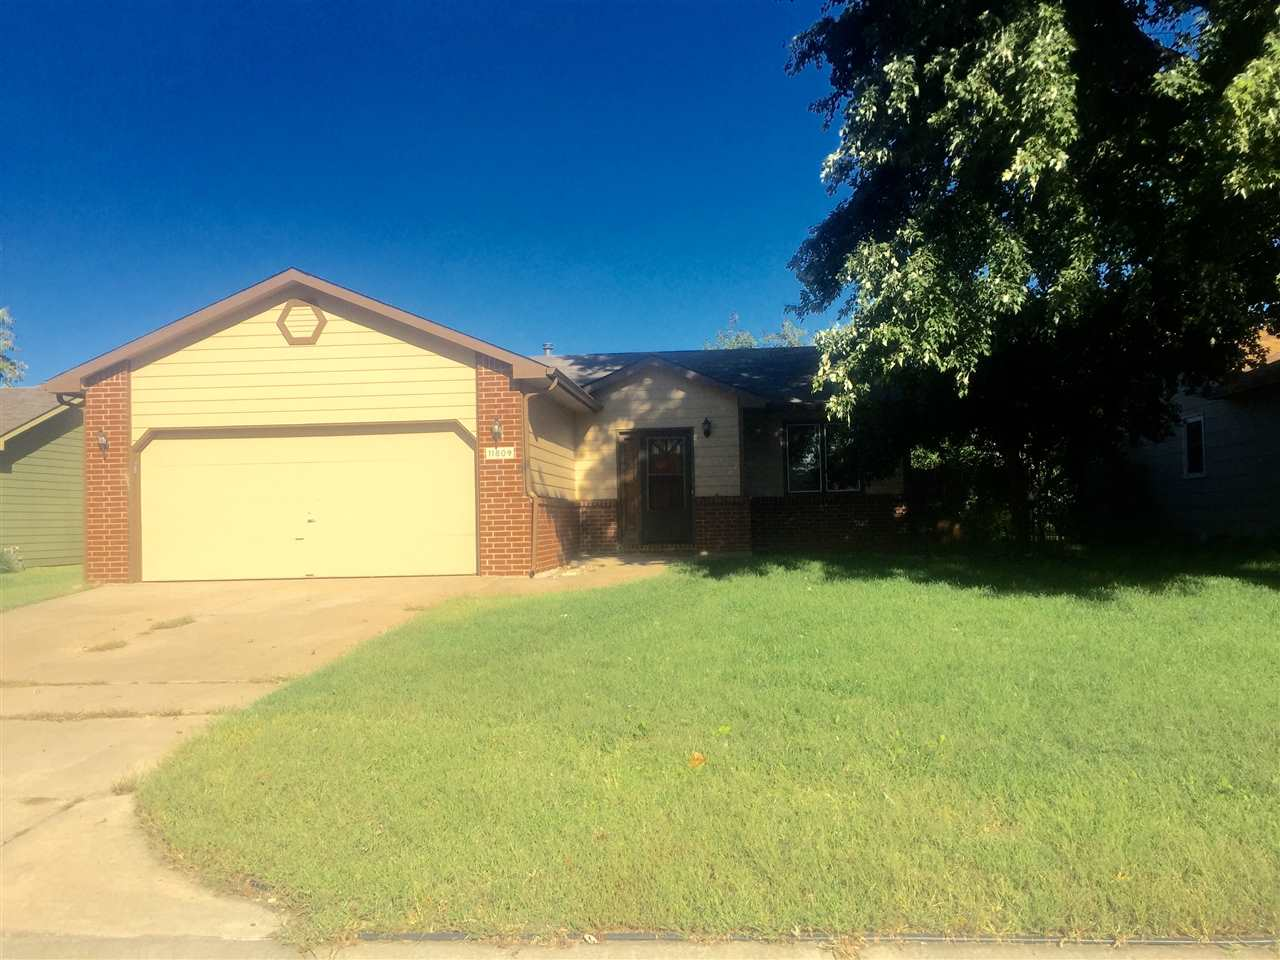 11809 W Bella Vista Ct, Wichita, KS 67212